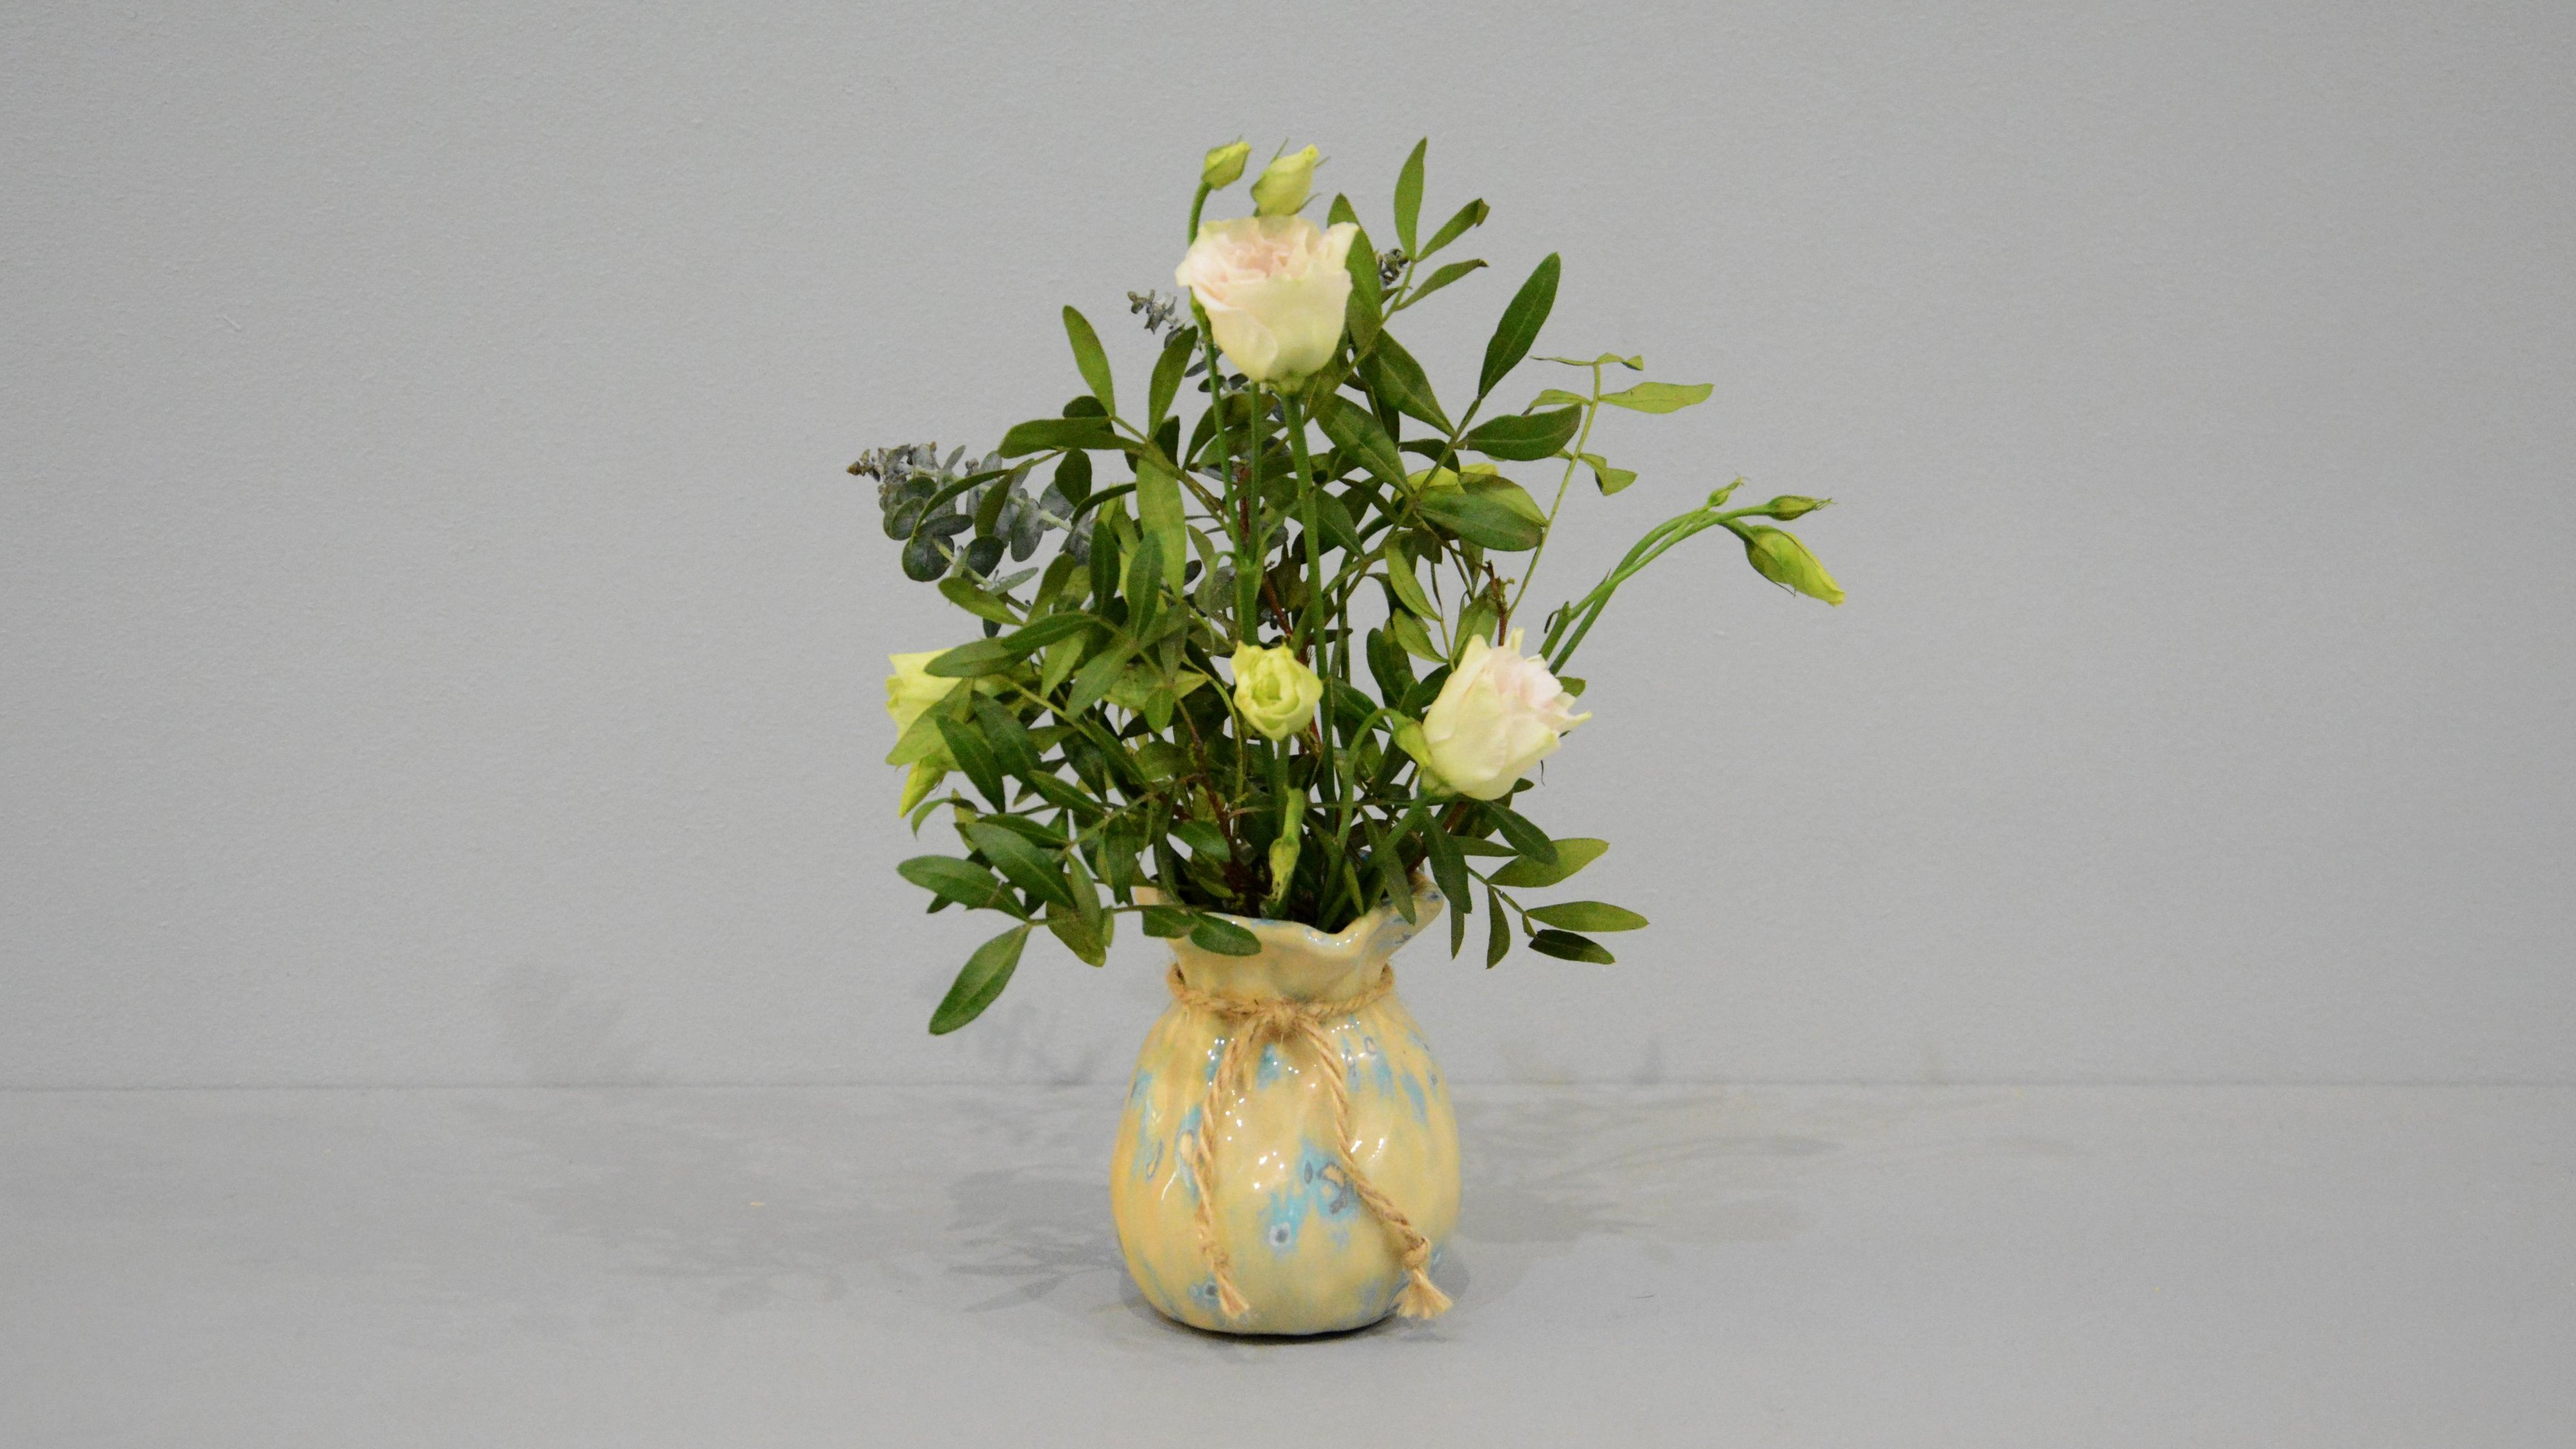 Candle vase «Beige Bagful», height - 9 cm, color - beige. Photo 1413-3840-2160.